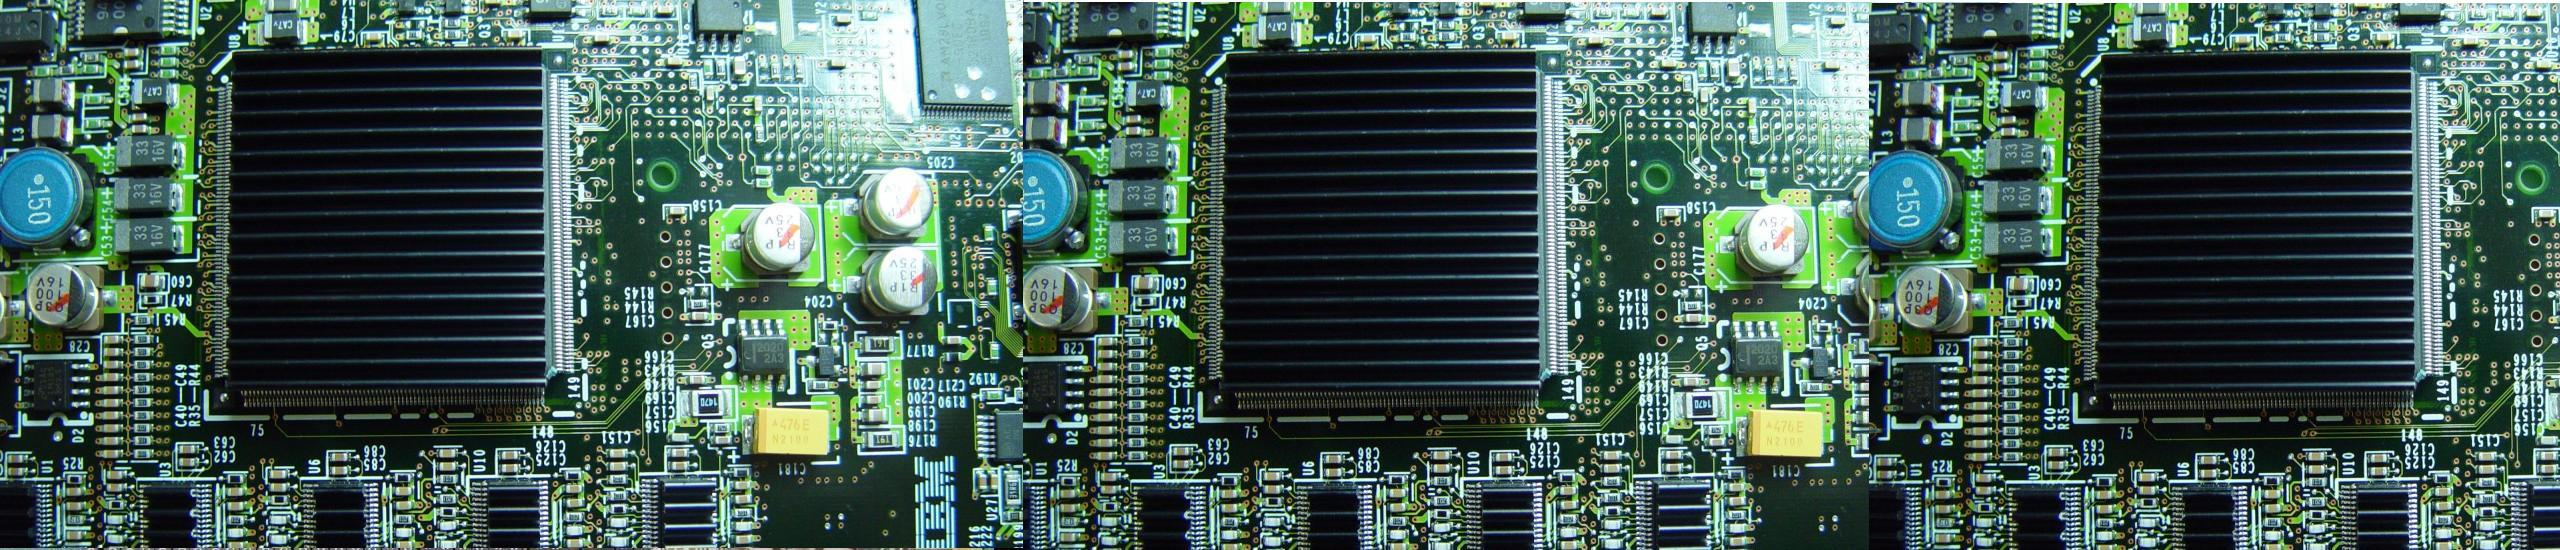 Printed Circuit Board Assembly Electronic